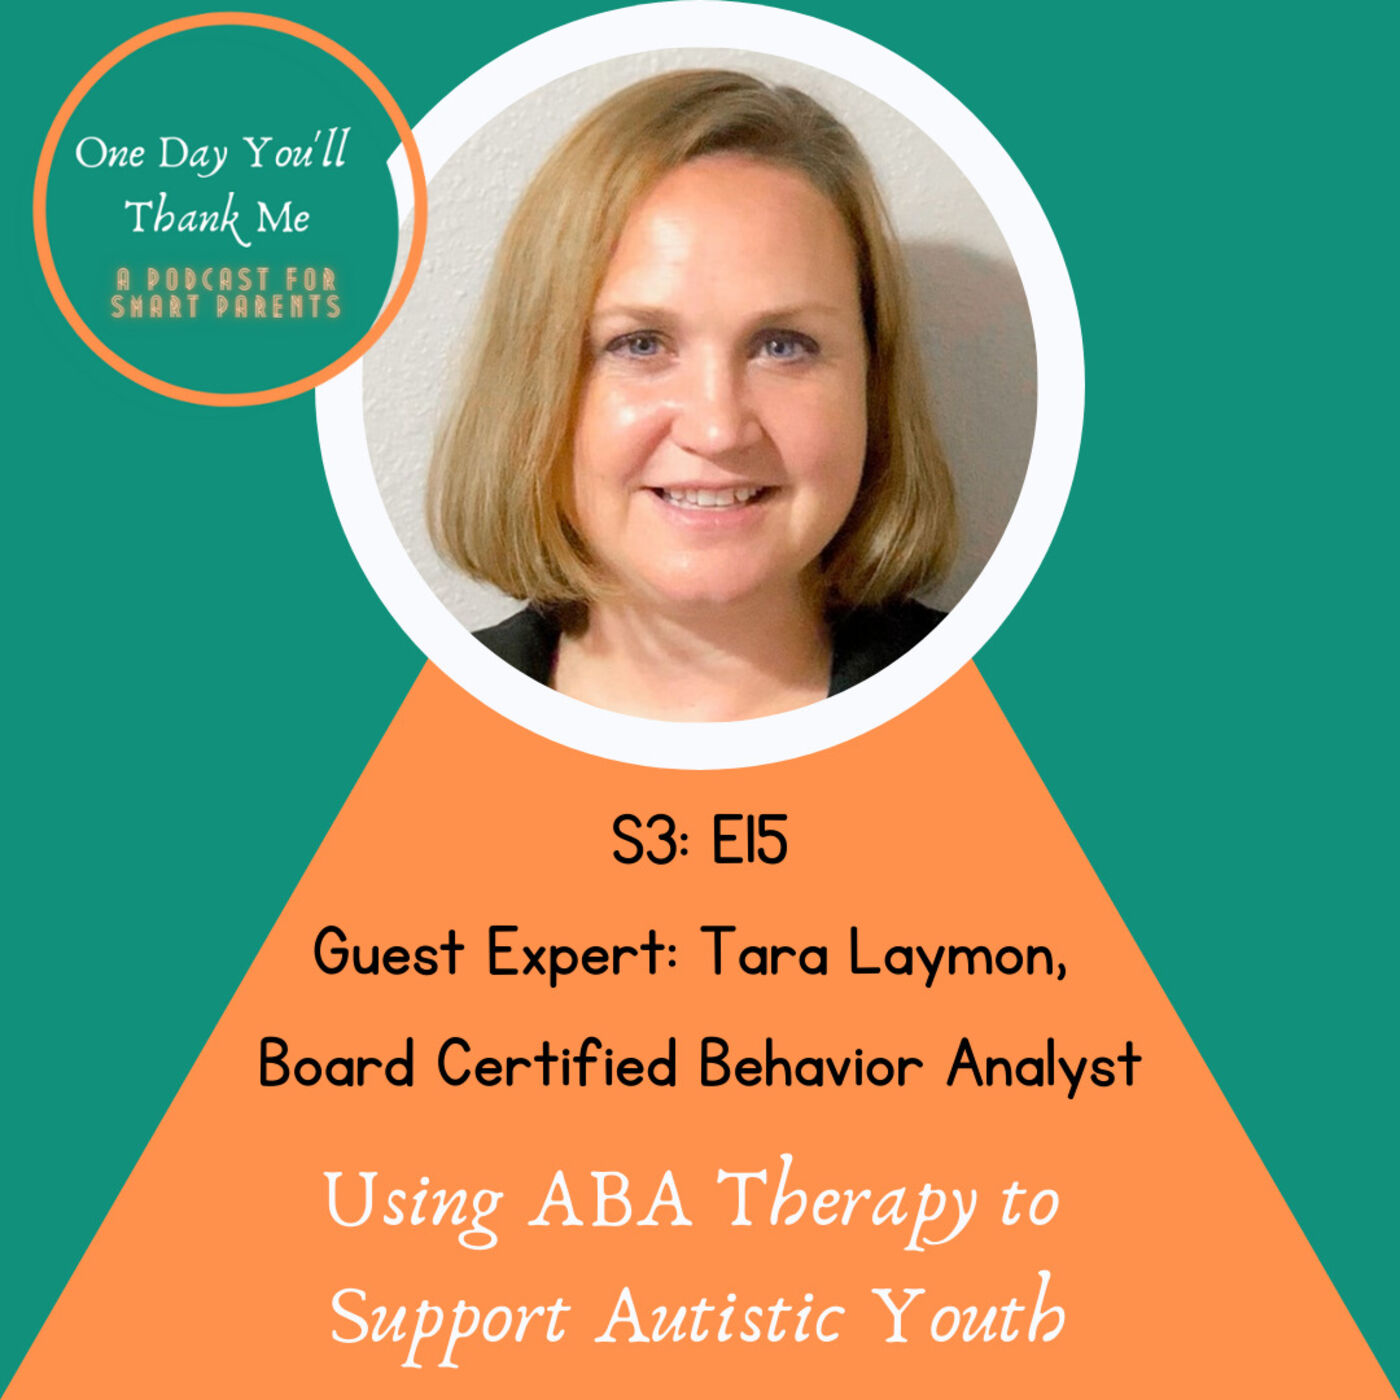 S3: E15 Guest Expert, Tara Laymon, Board Certified Behavior Analyst, Using ABA Therapy to Support Autistic Youth